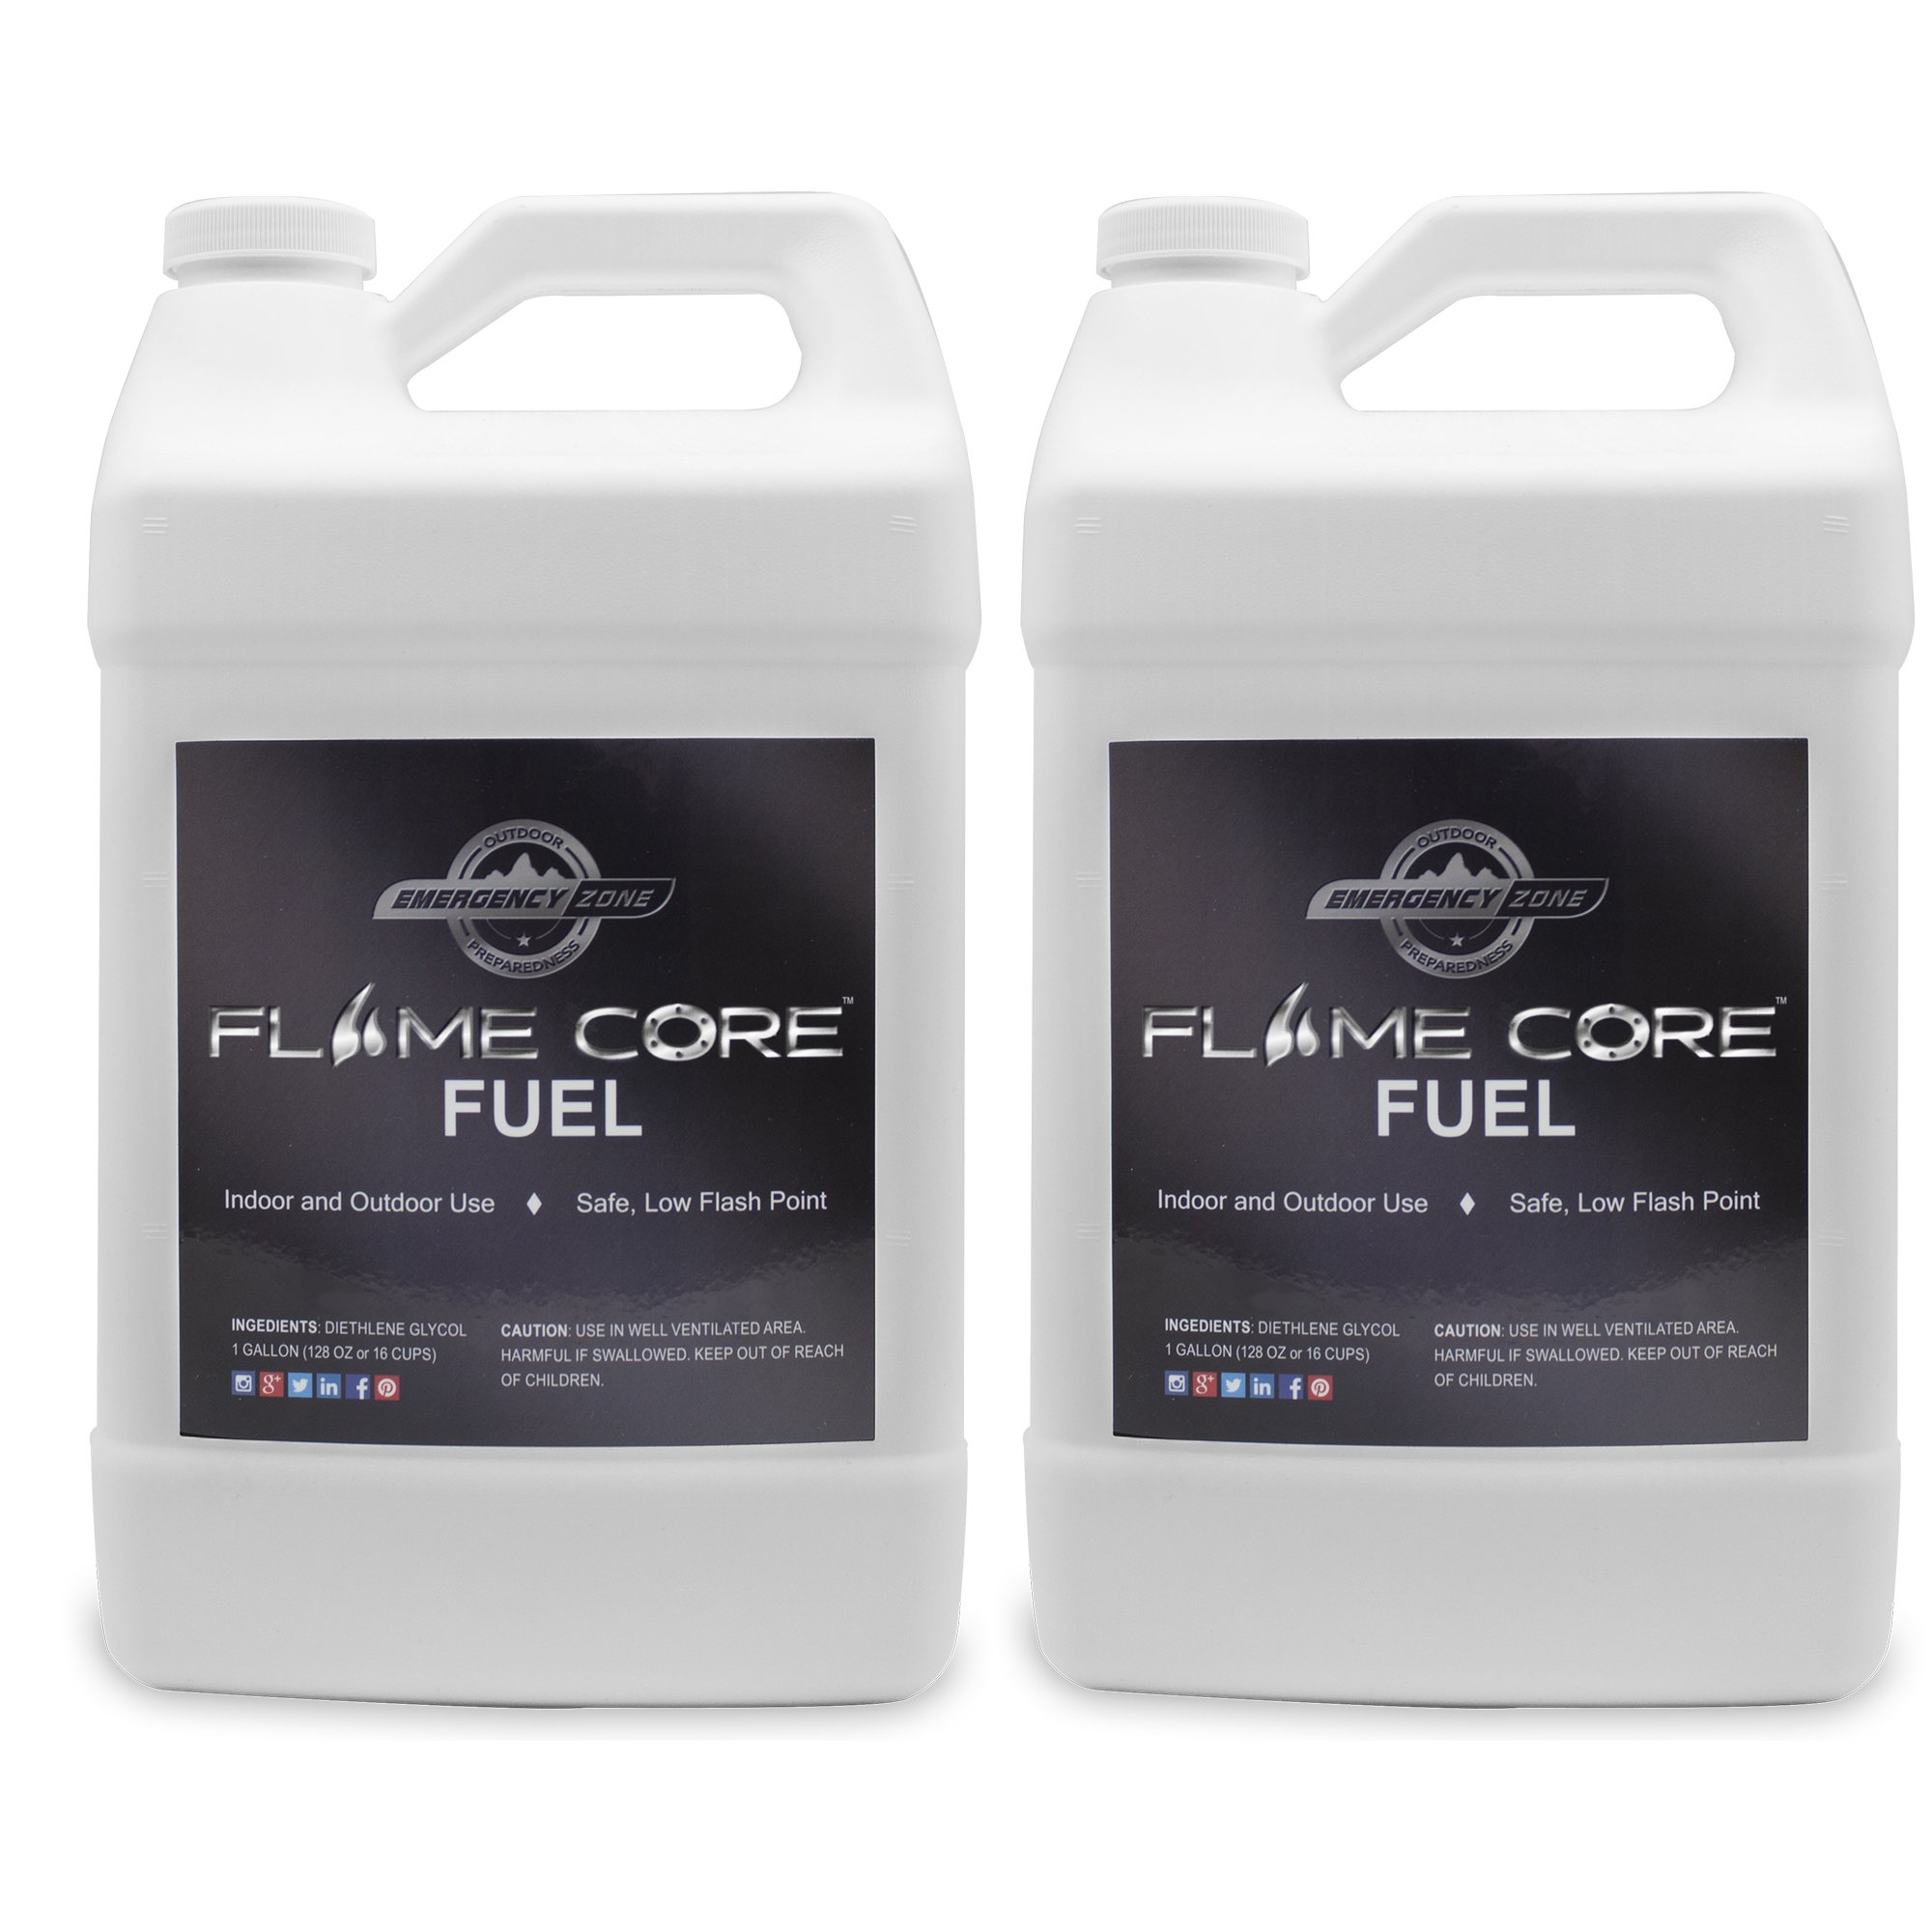 Emergency Zone FlameCore Reusable Fuel Cell Gallon Fuel Refill, Choose 1 or 2 Pack (FlameCore Fuel Gallon Refill, 2 Pack) by Emergency Zone